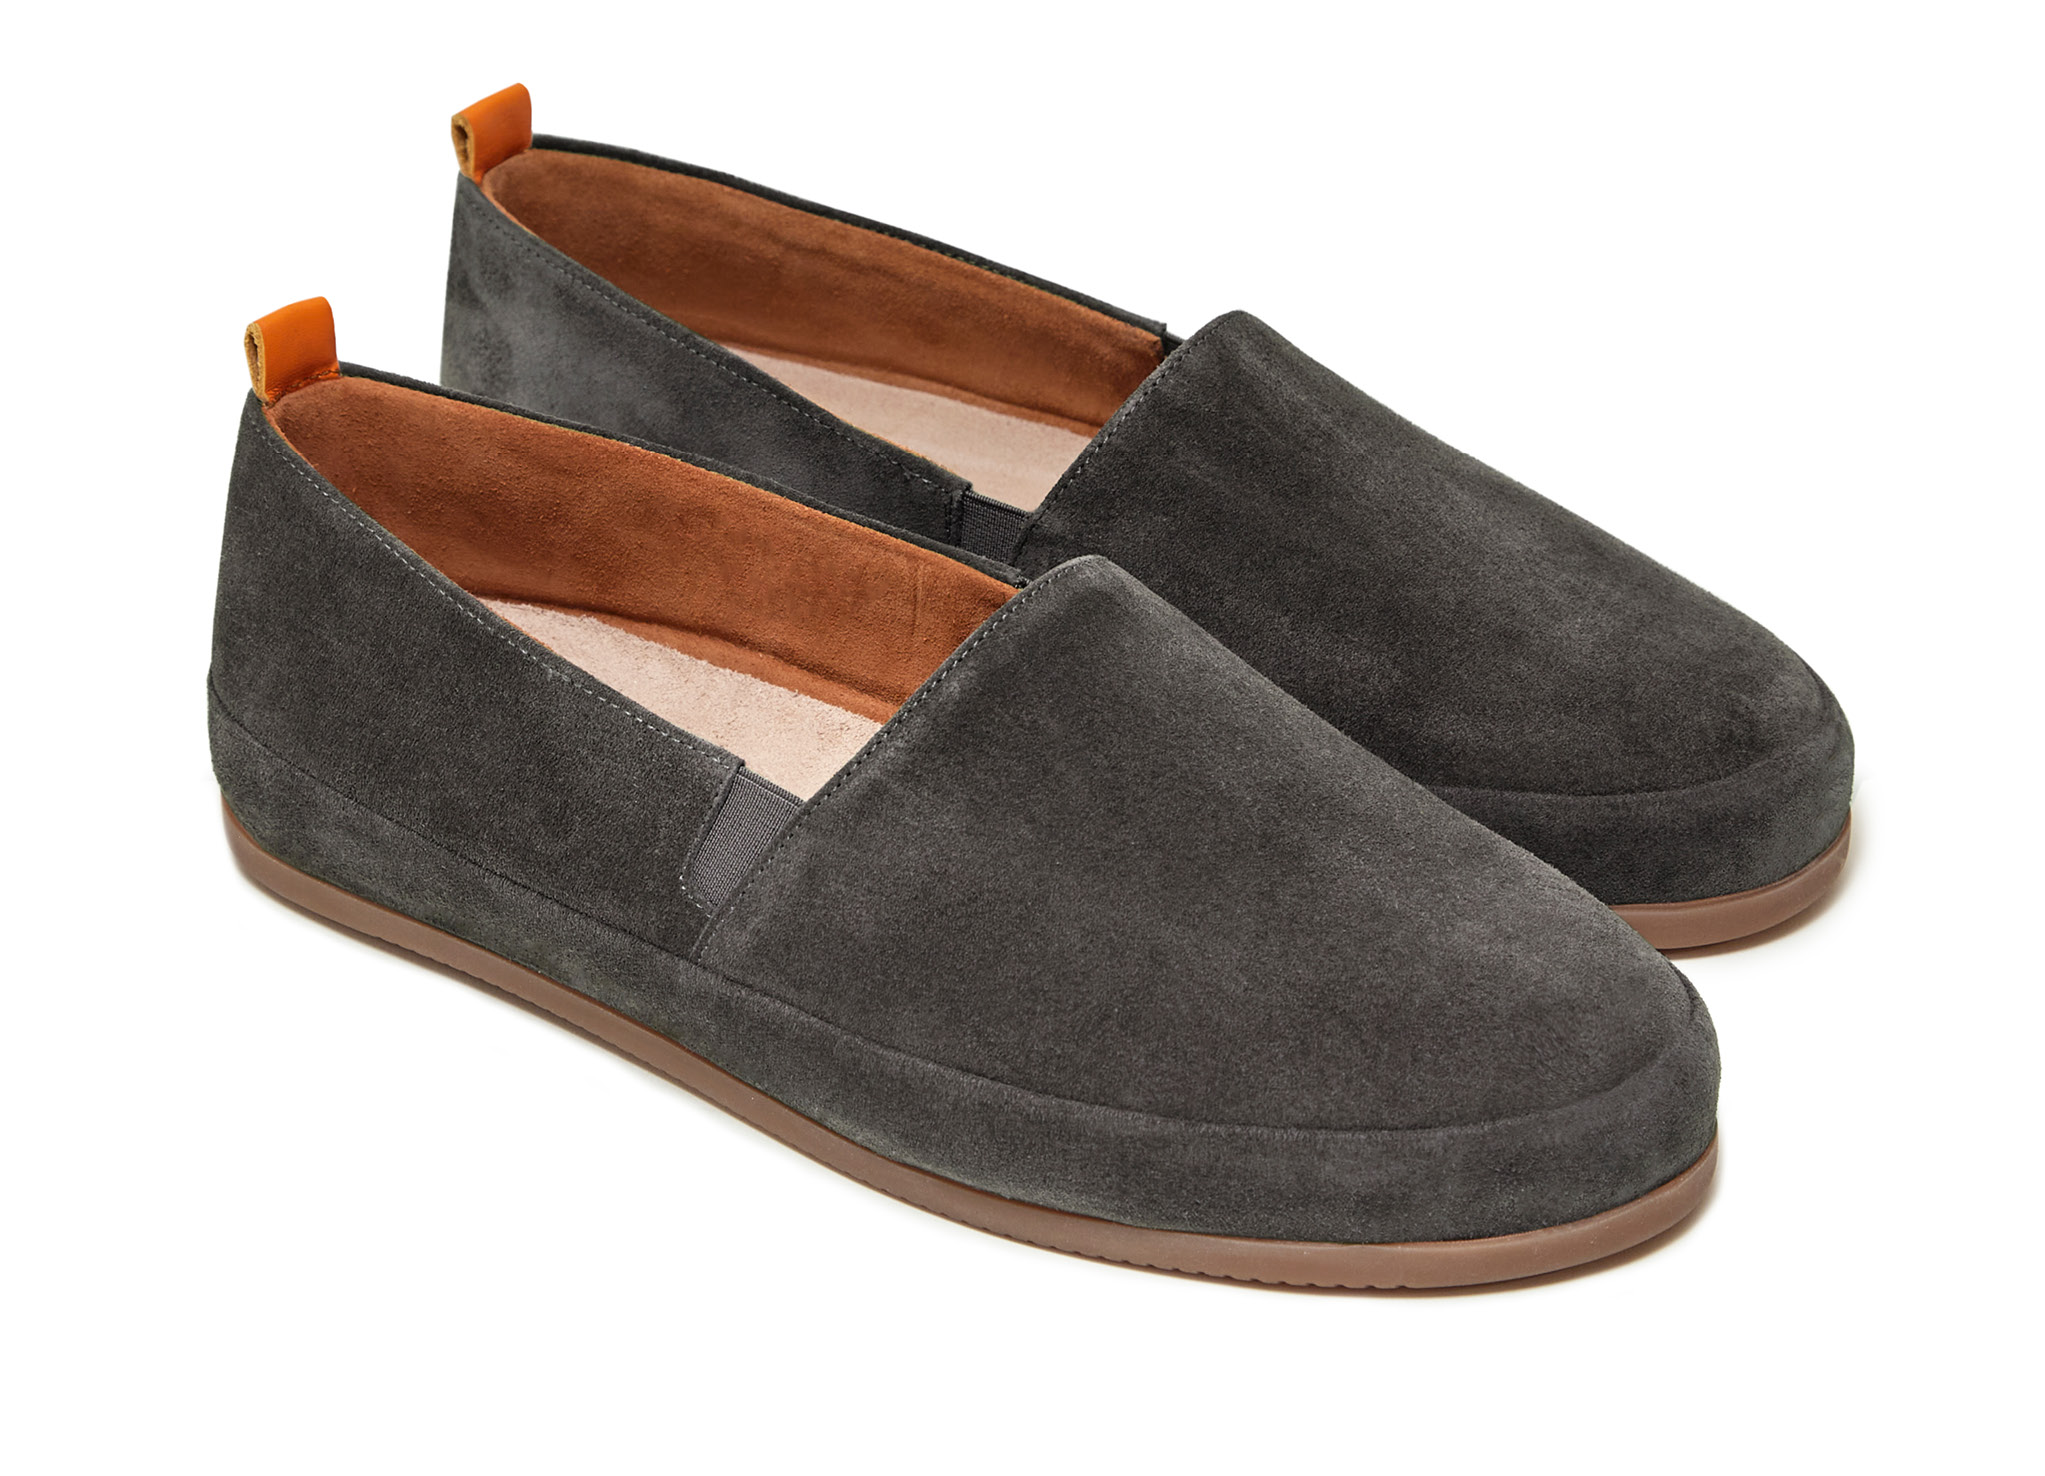 Brown Loafers for Men in Suede | MULO shoes